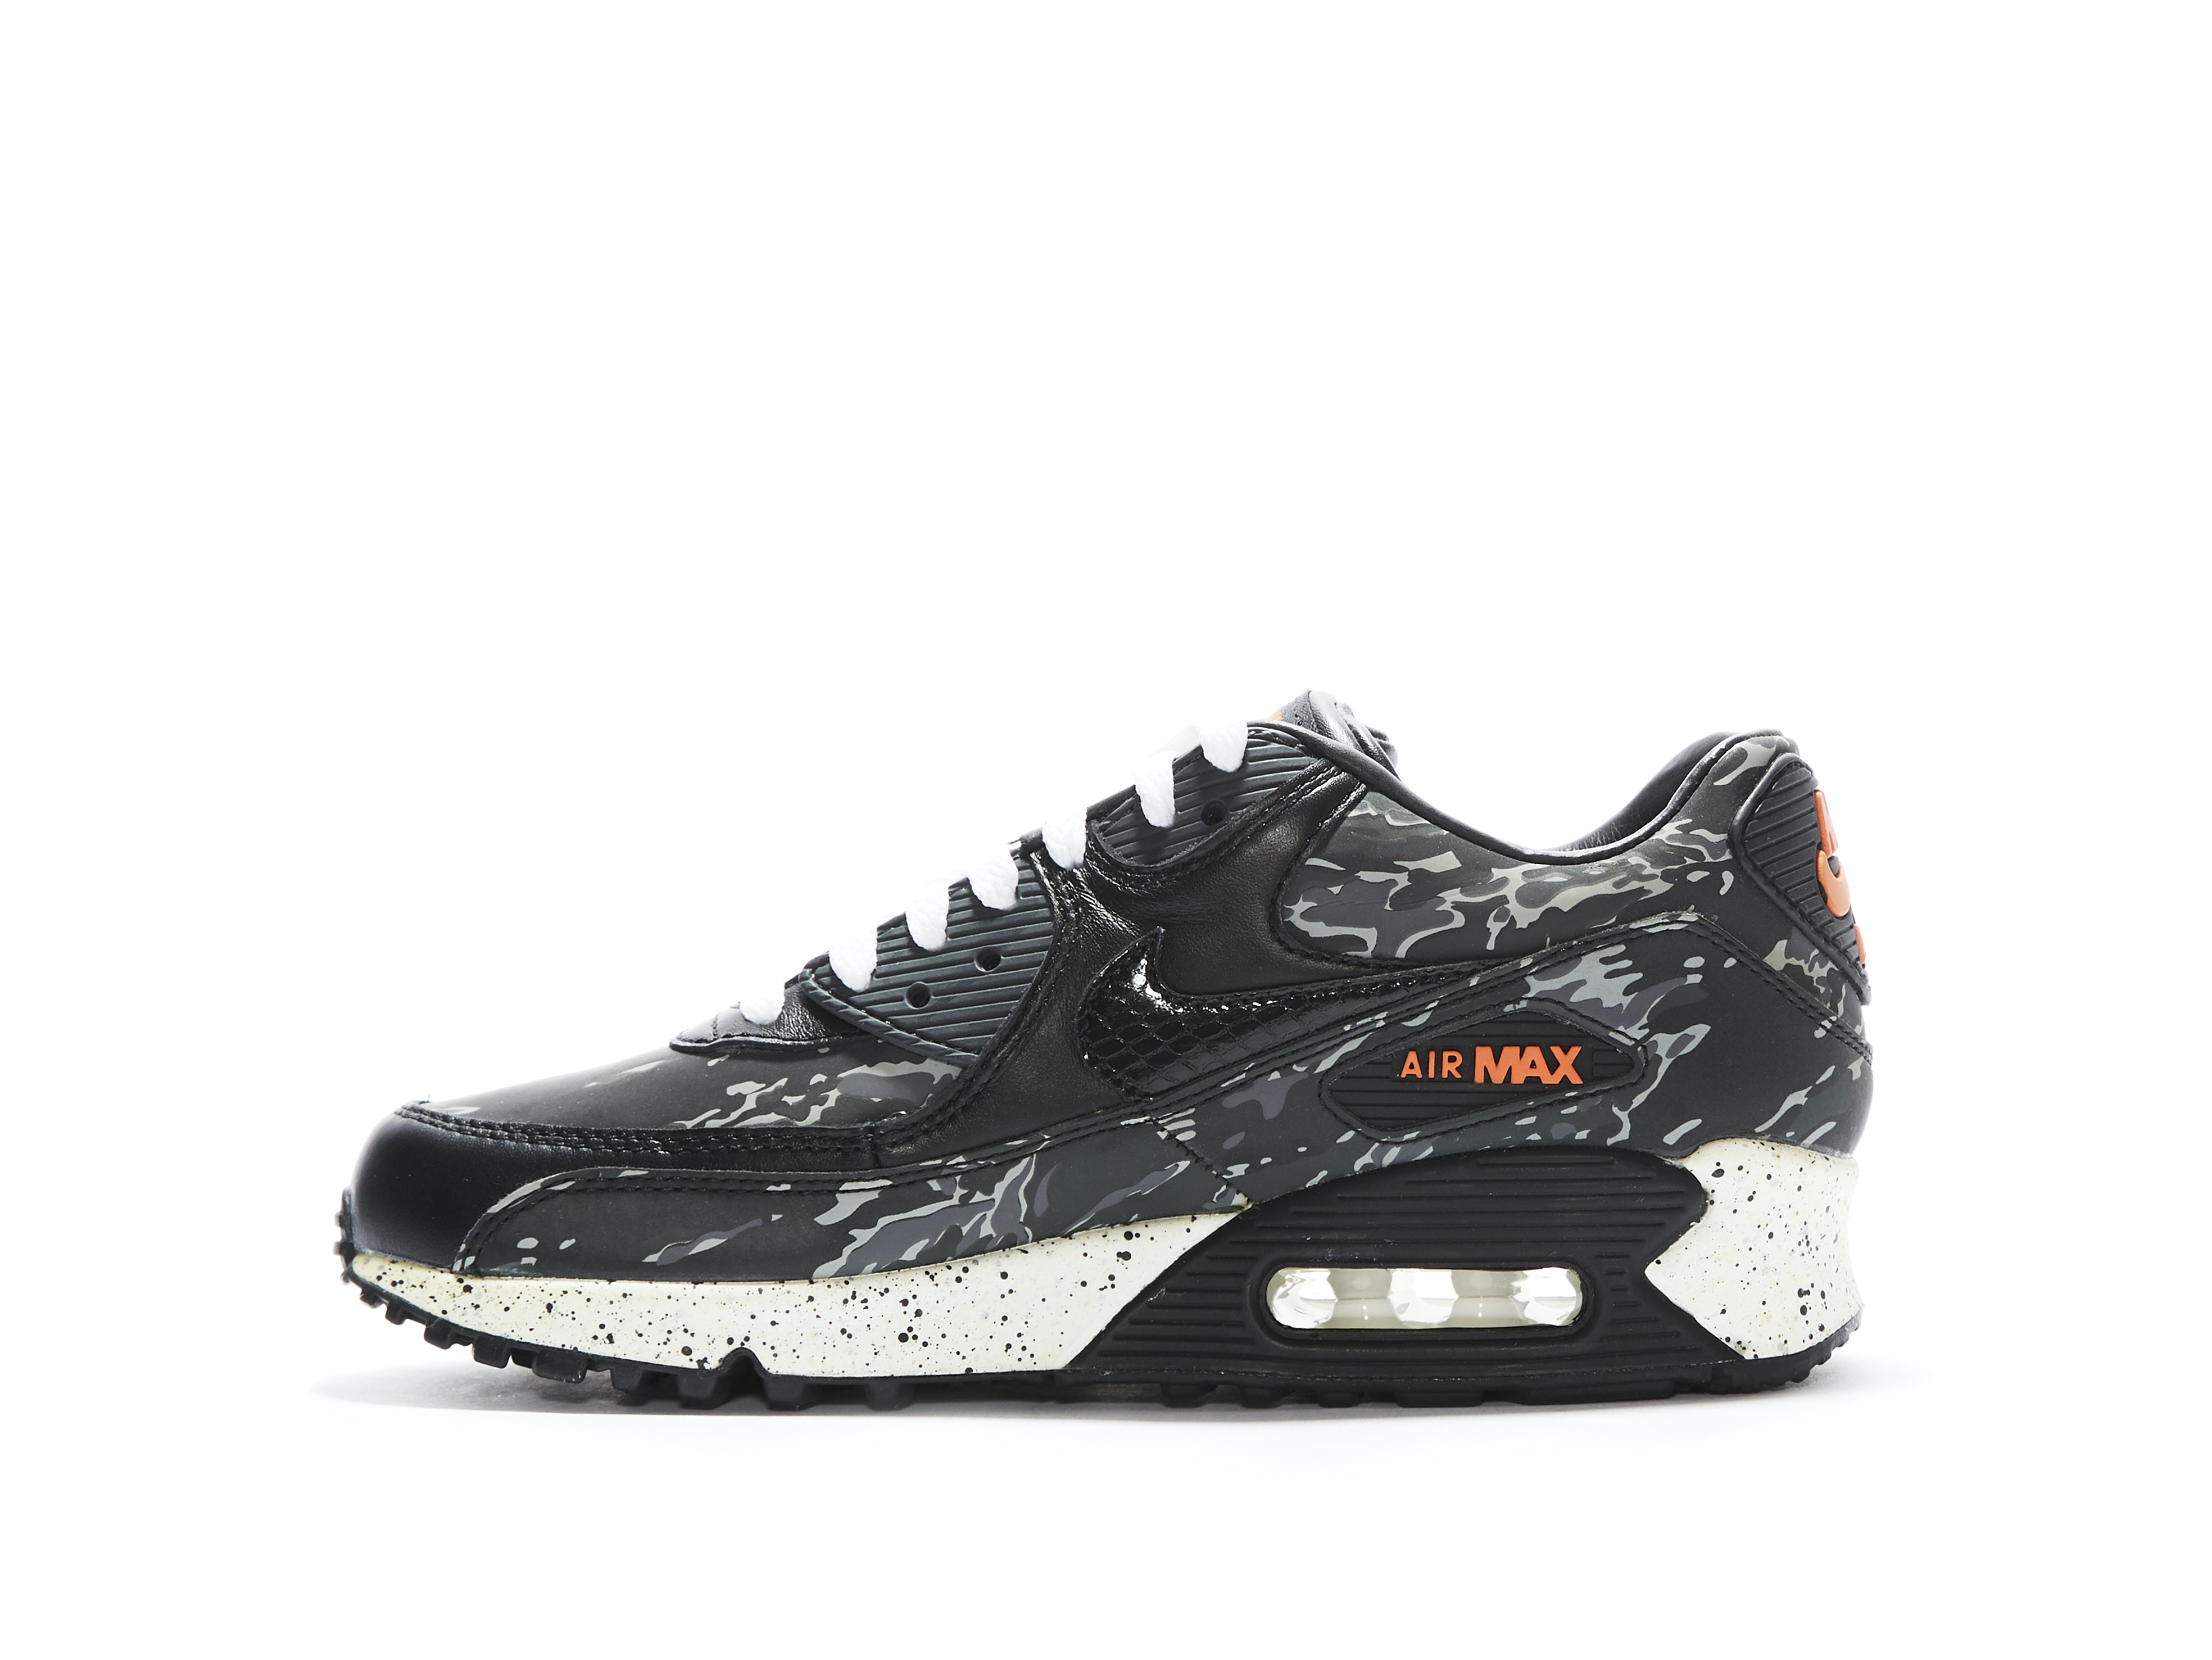 low priced 1f999 c6c70 Air Max 90 Tiger Camo x Atmos. 100% AuthenticSold out! Nike   333888-024